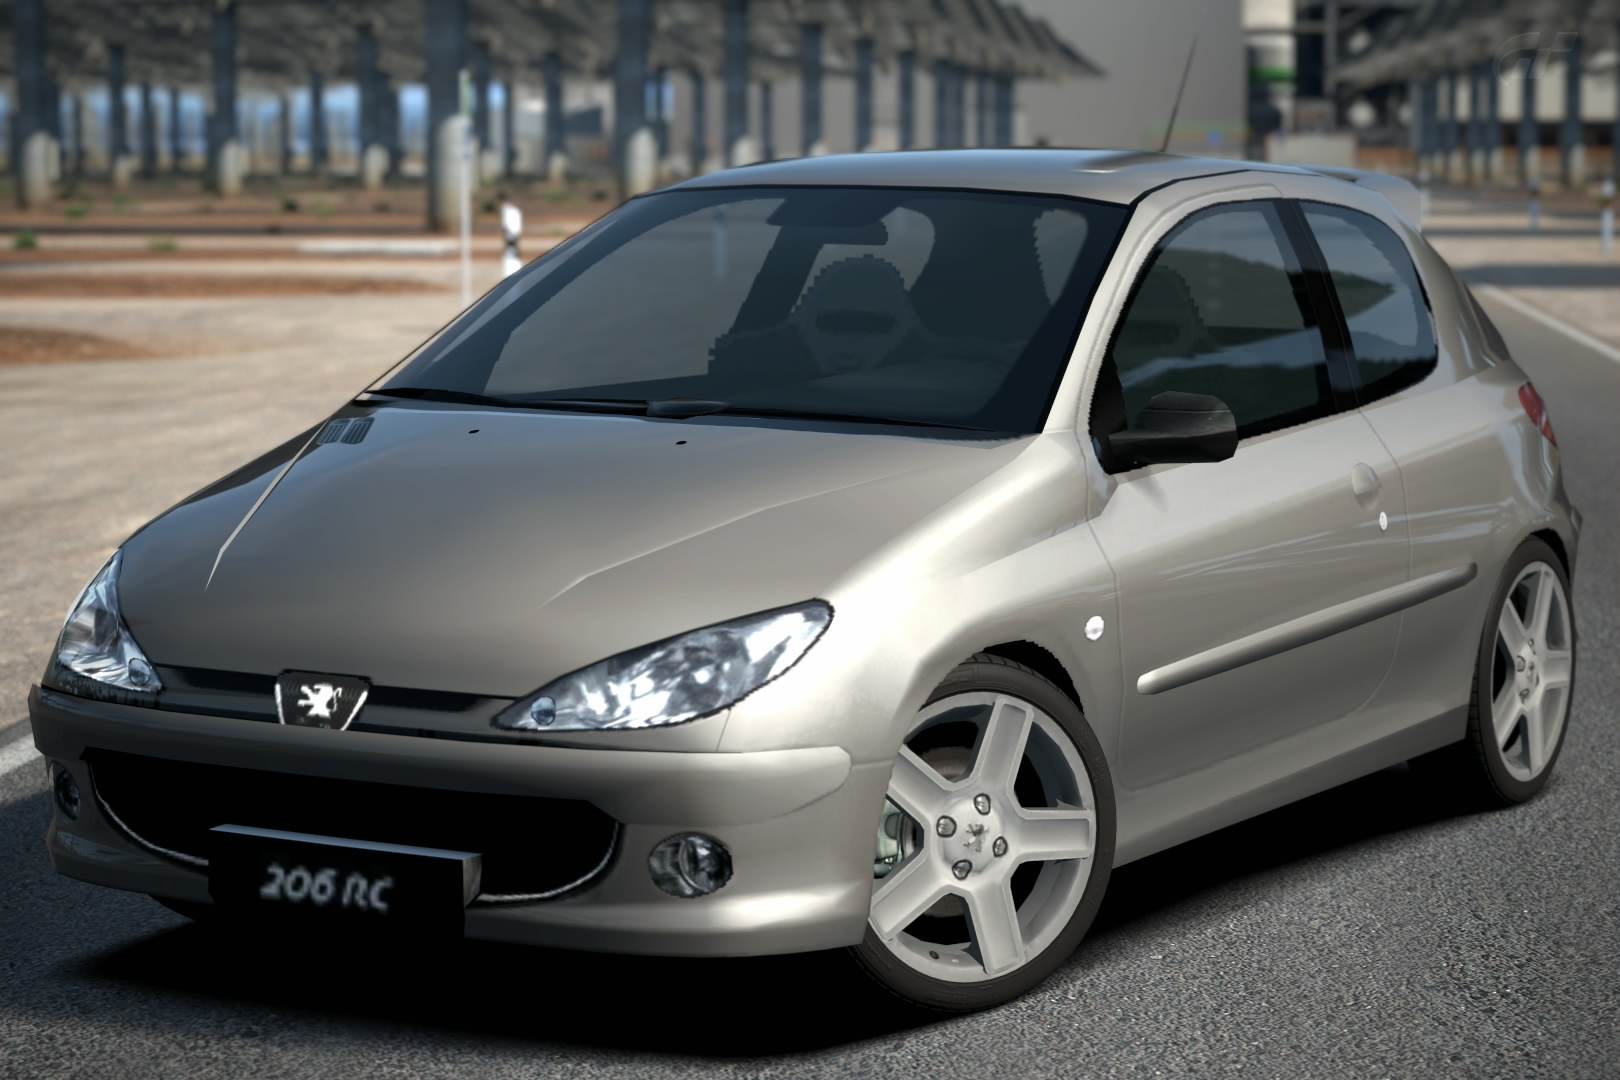 peugeot 206 rc 39 03 gran turismo wiki fandom powered by wikia. Black Bedroom Furniture Sets. Home Design Ideas